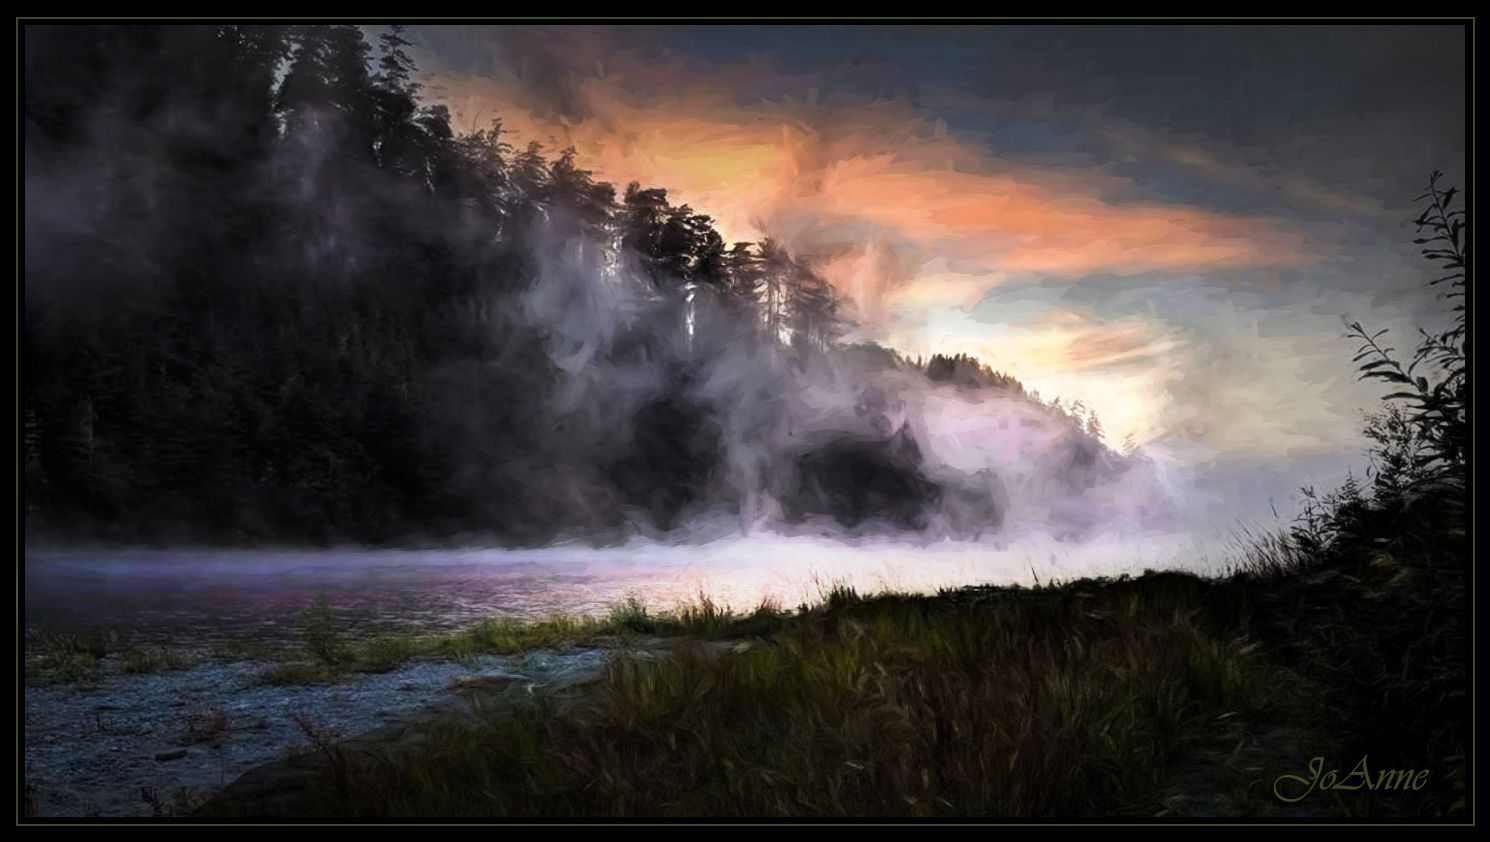 dawn on the Klamath River